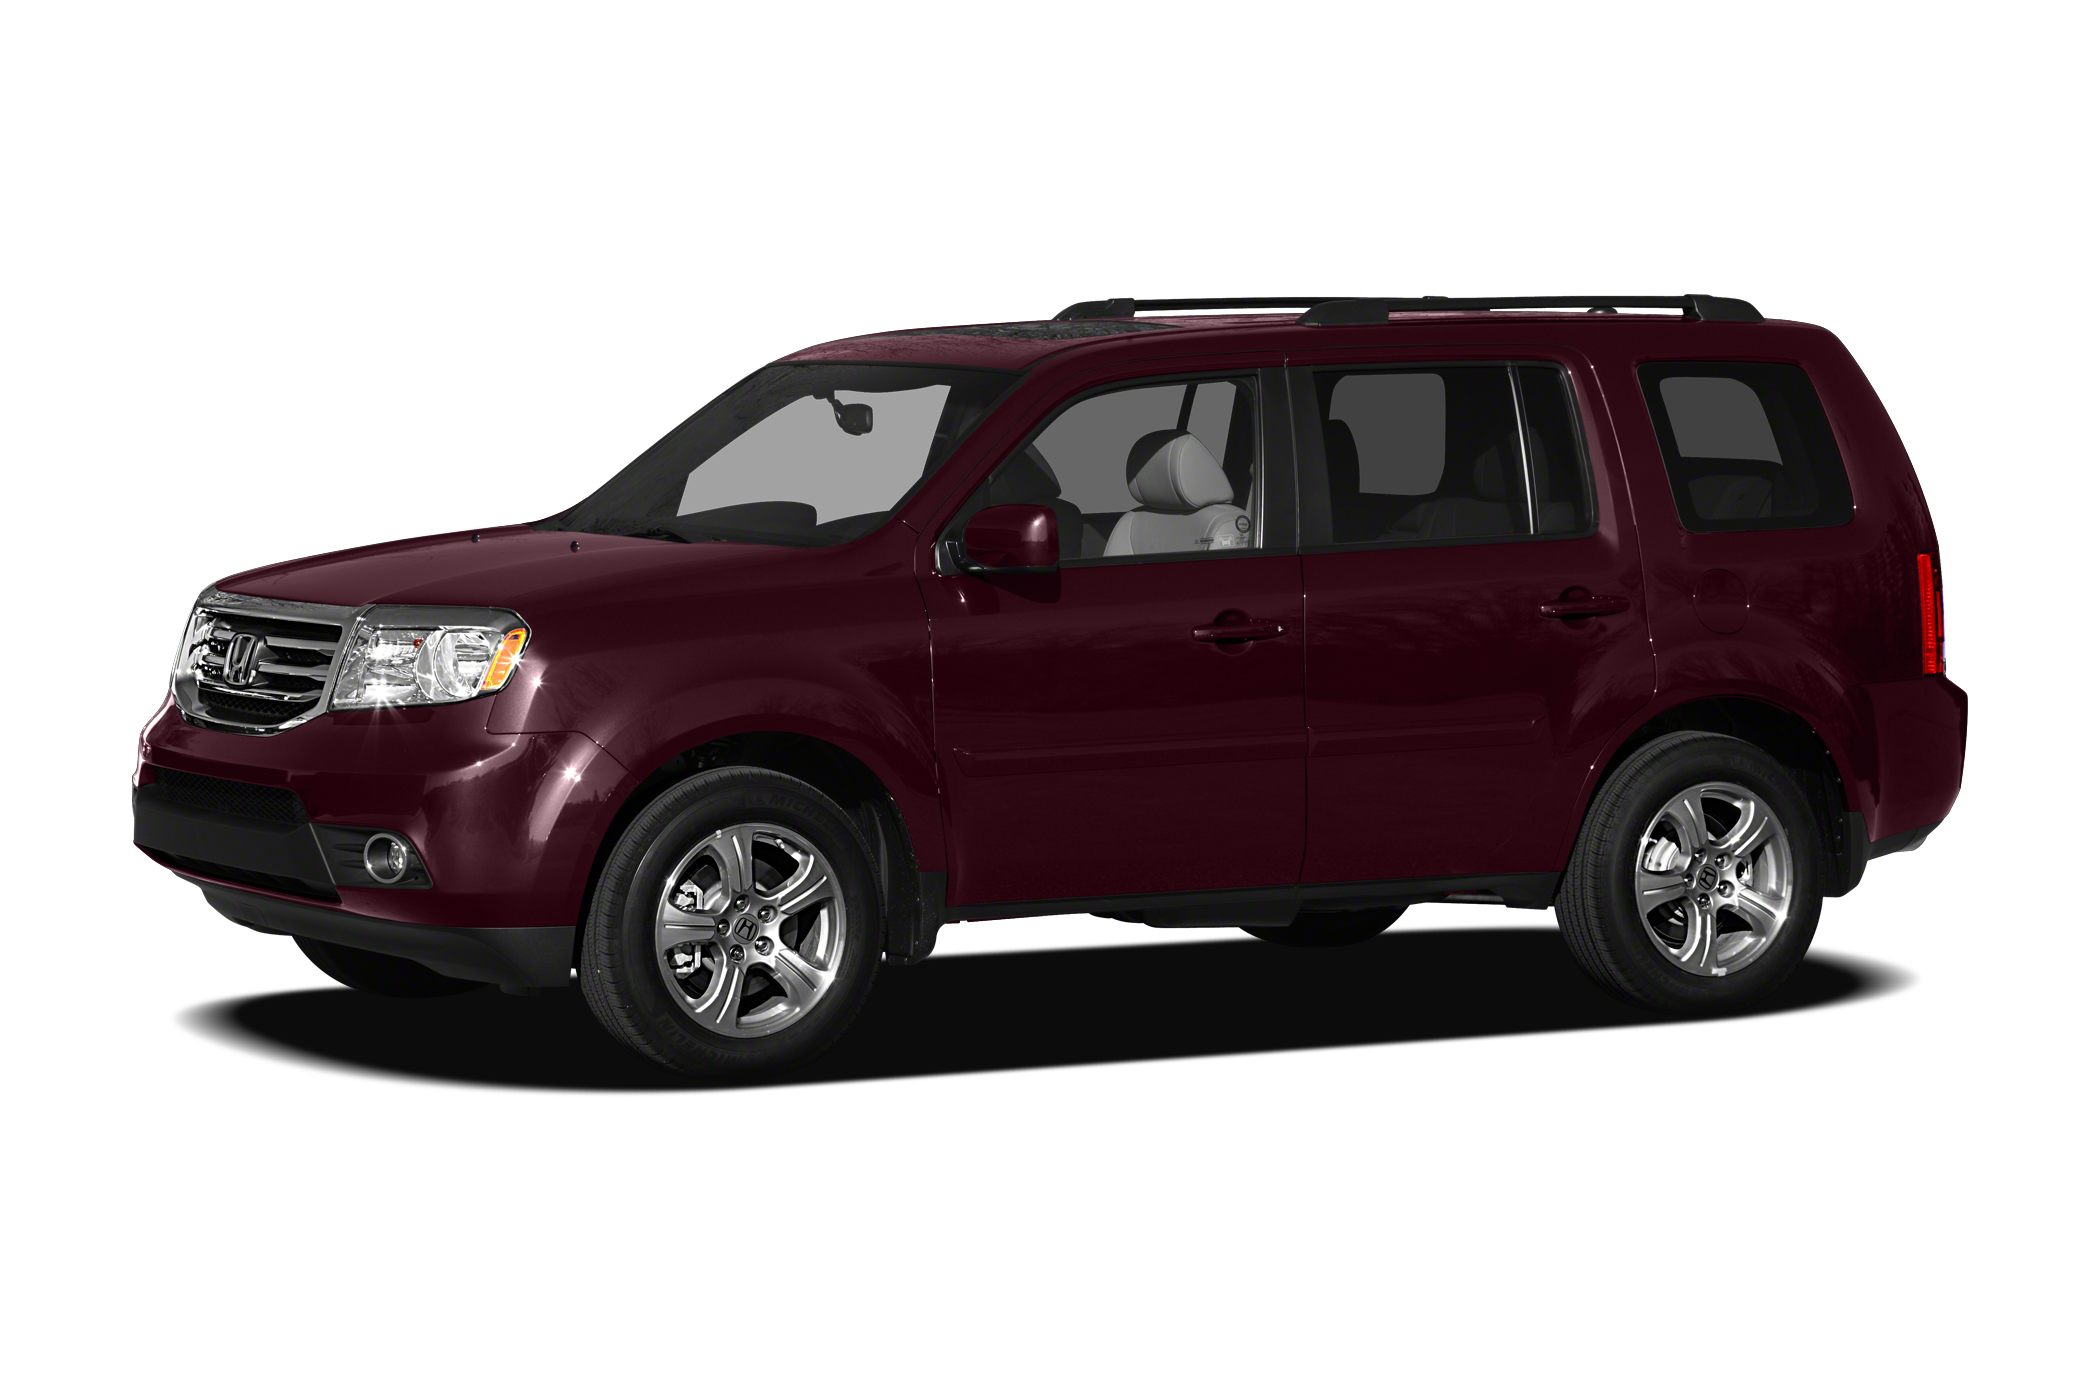 2012 Honda Pilot EX-L SUV for sale in Beckley for $28,995 with 35,606 miles.